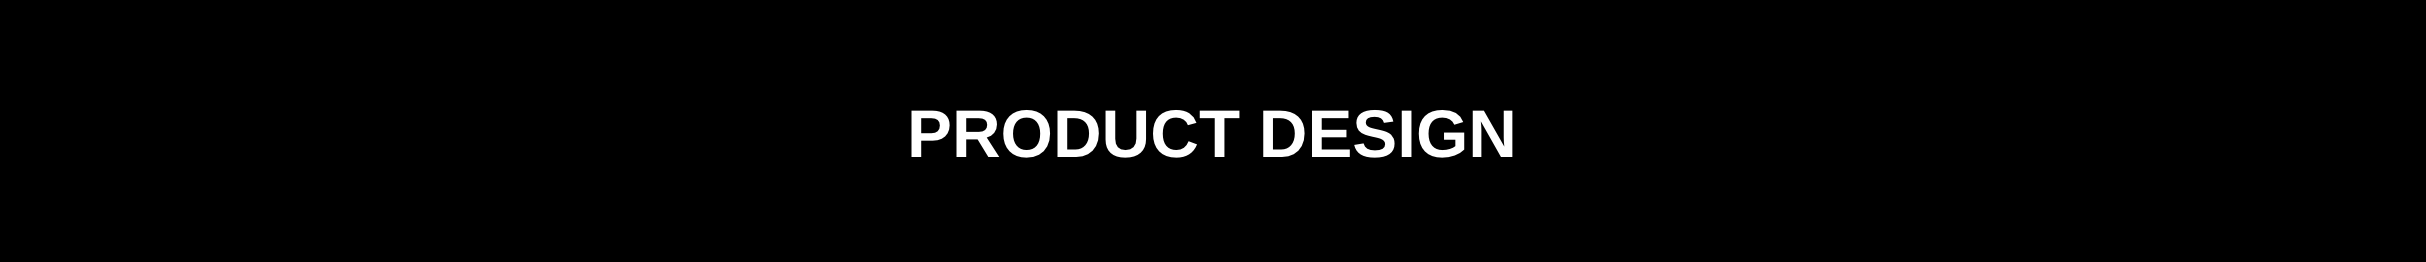 PRODUCT-DESIGN.png